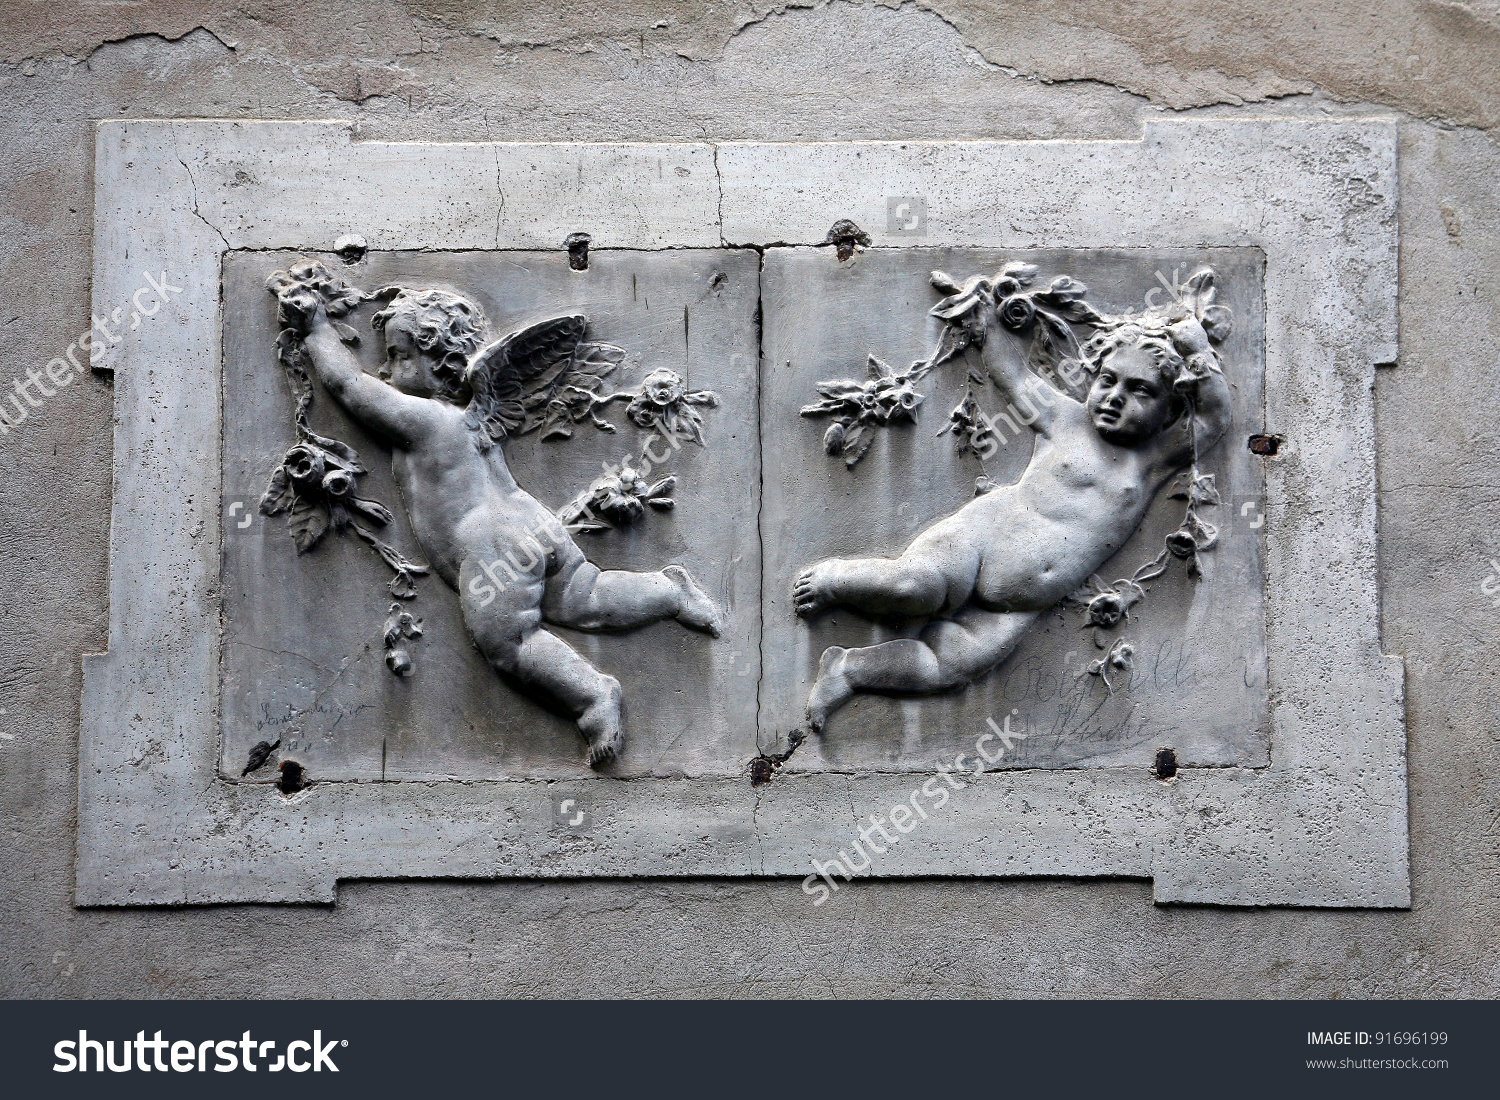 Putti, Angels, Italy Stock Photo 91696199 : Shutterstock.